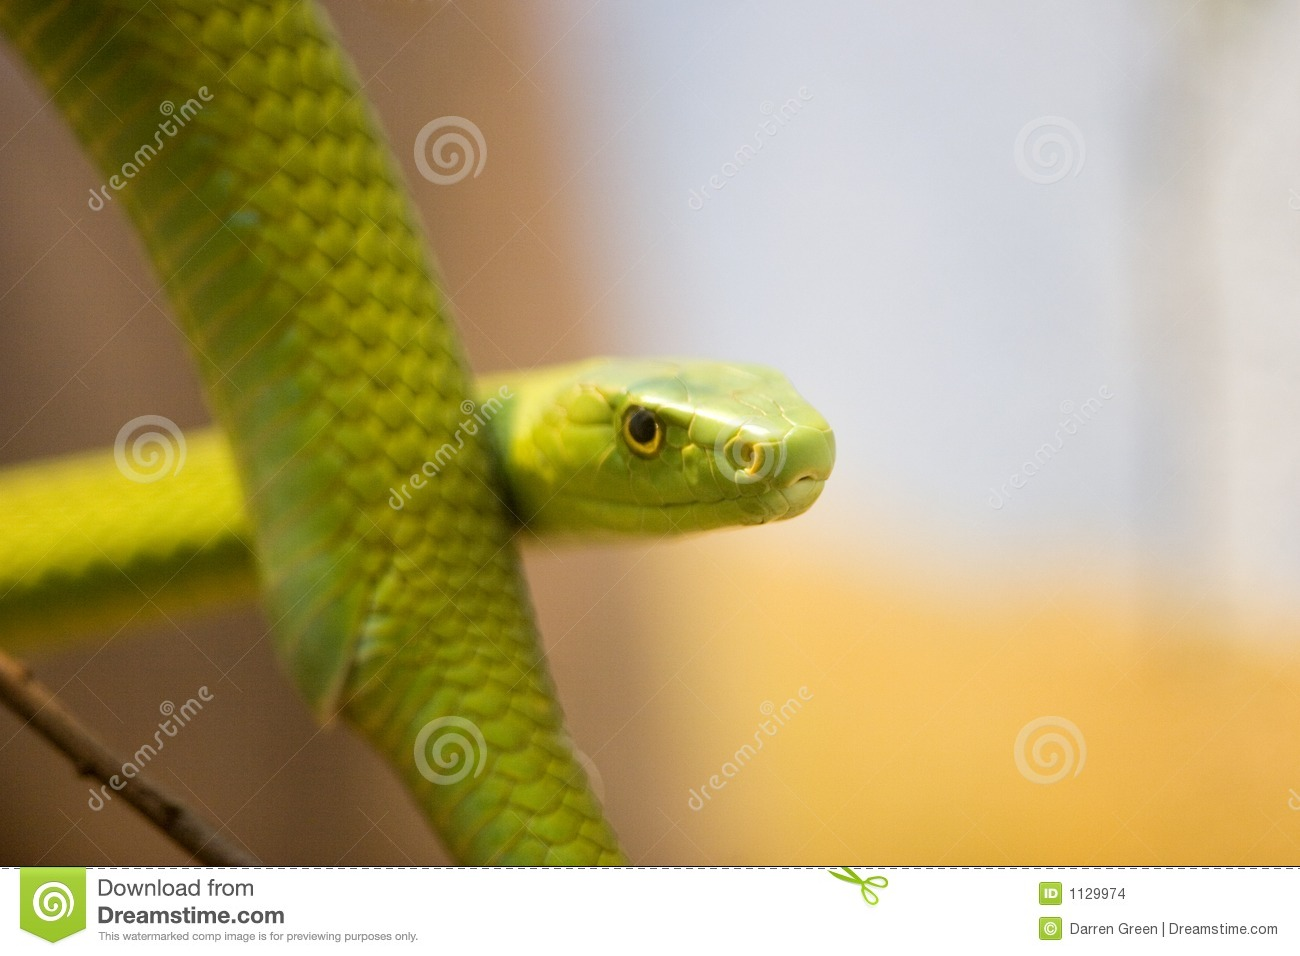 Mamba verde, Dendroaspis Angusticeps